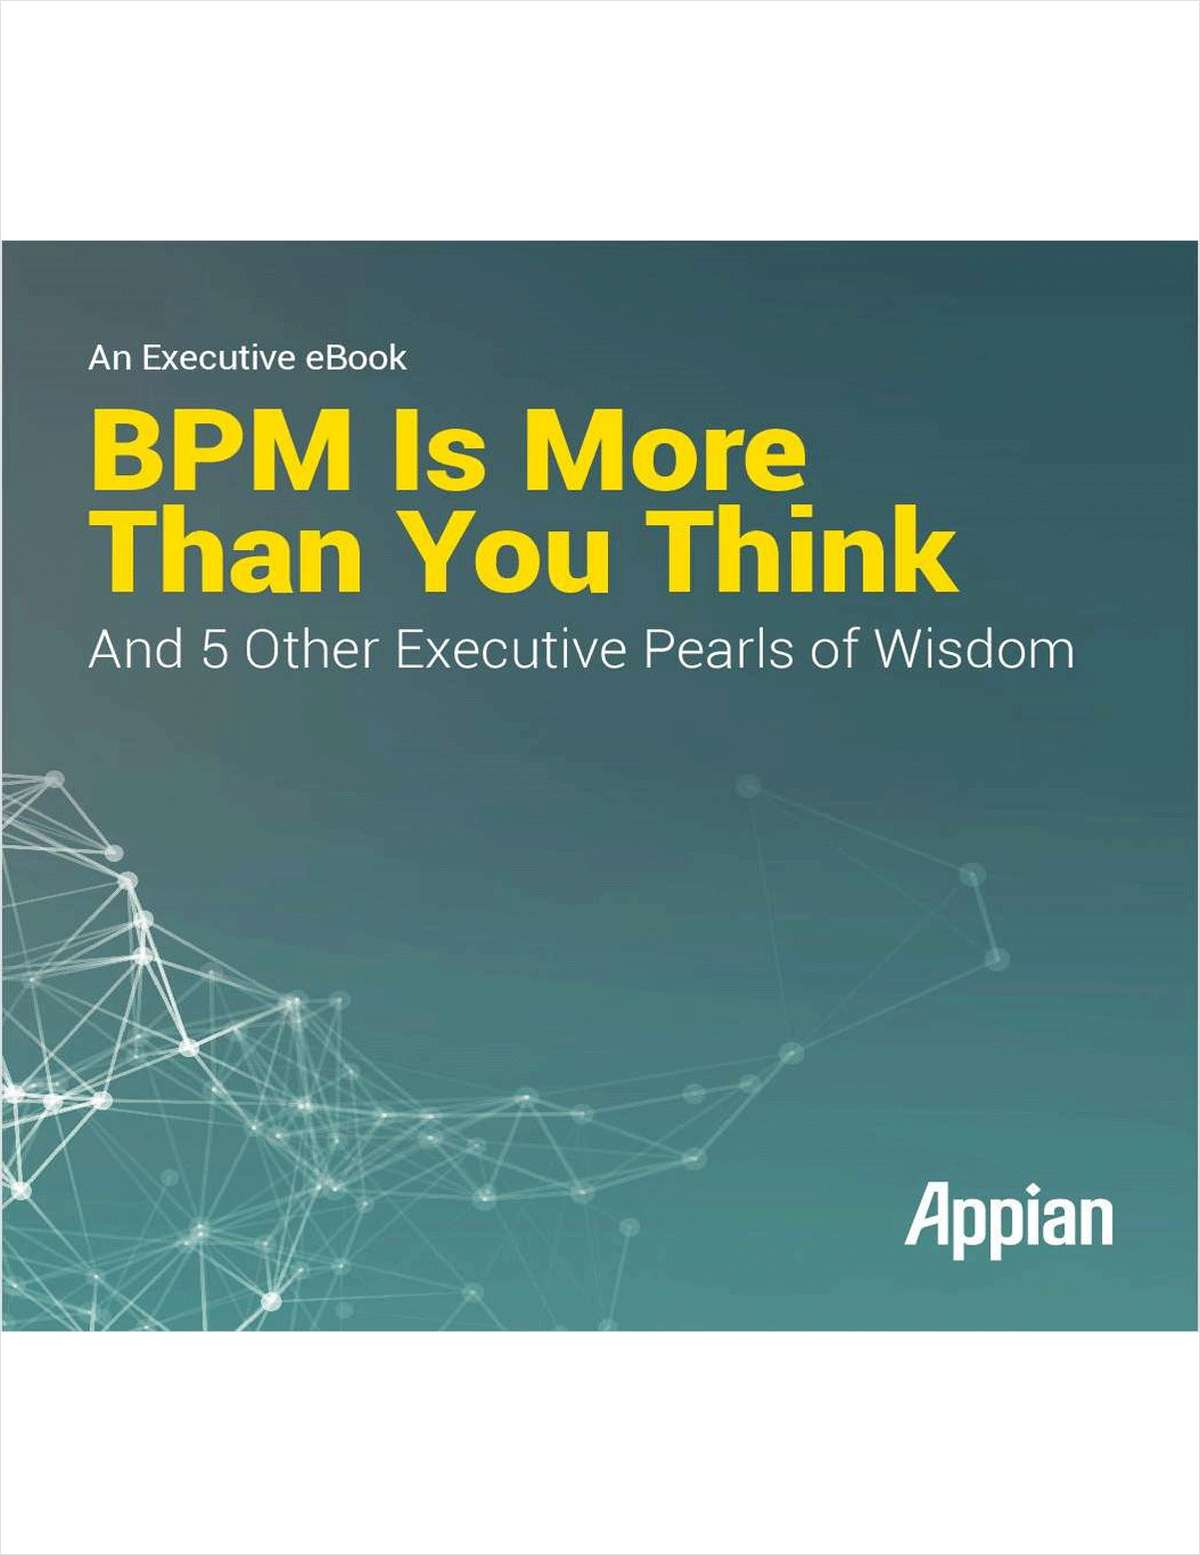 BPM is More Than You Think and 5 Other Executive Pearls of Wisdom